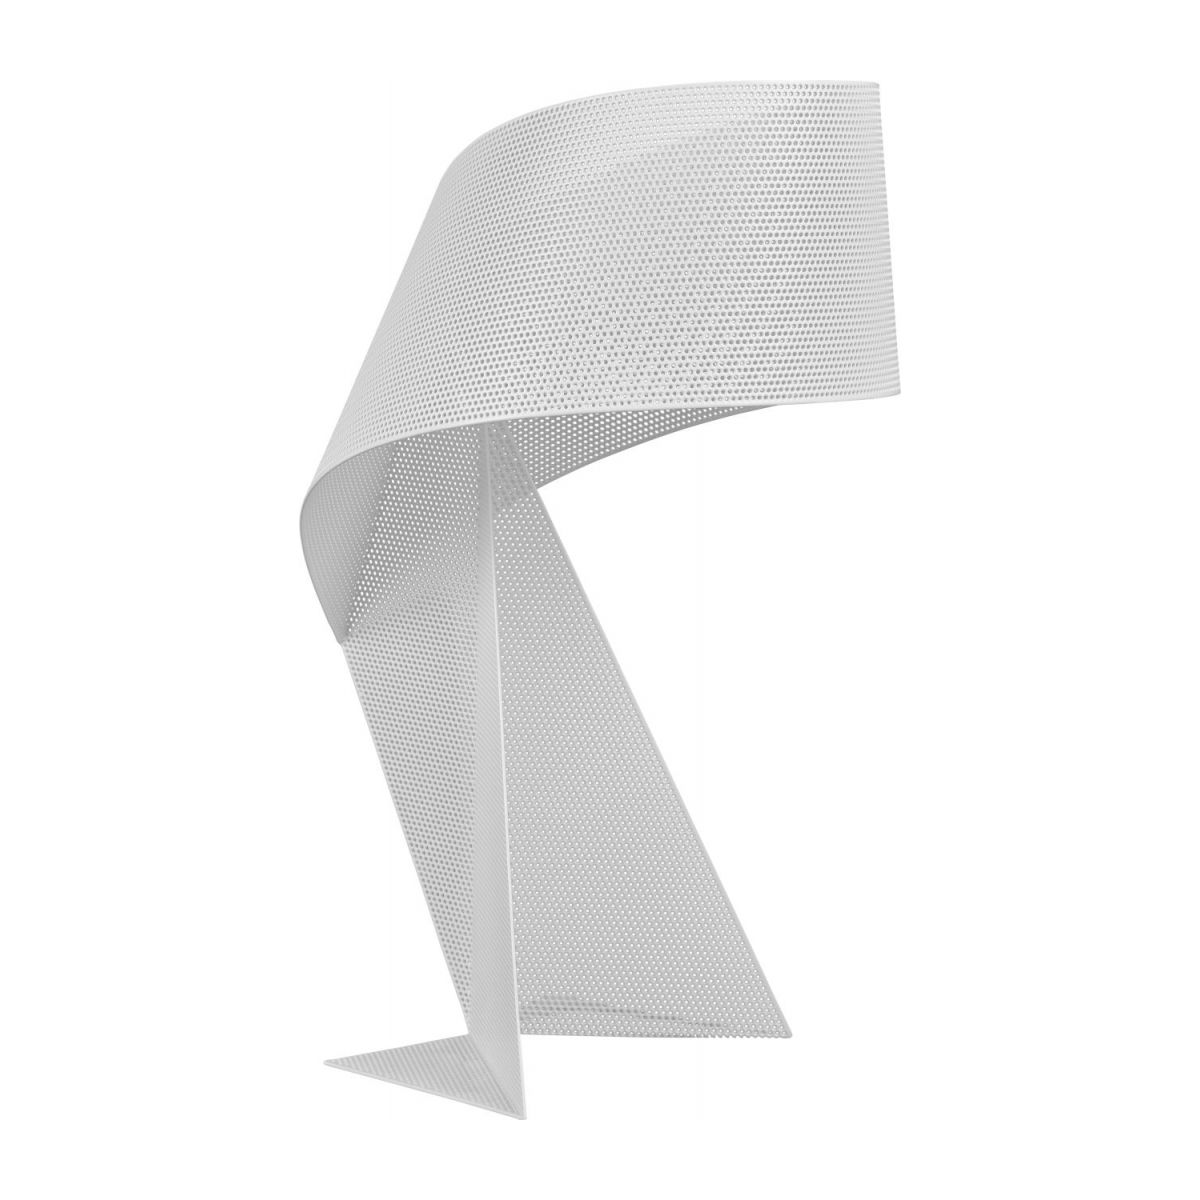 Lampe de table en métal perforé - Blanc - 50 cm n°1